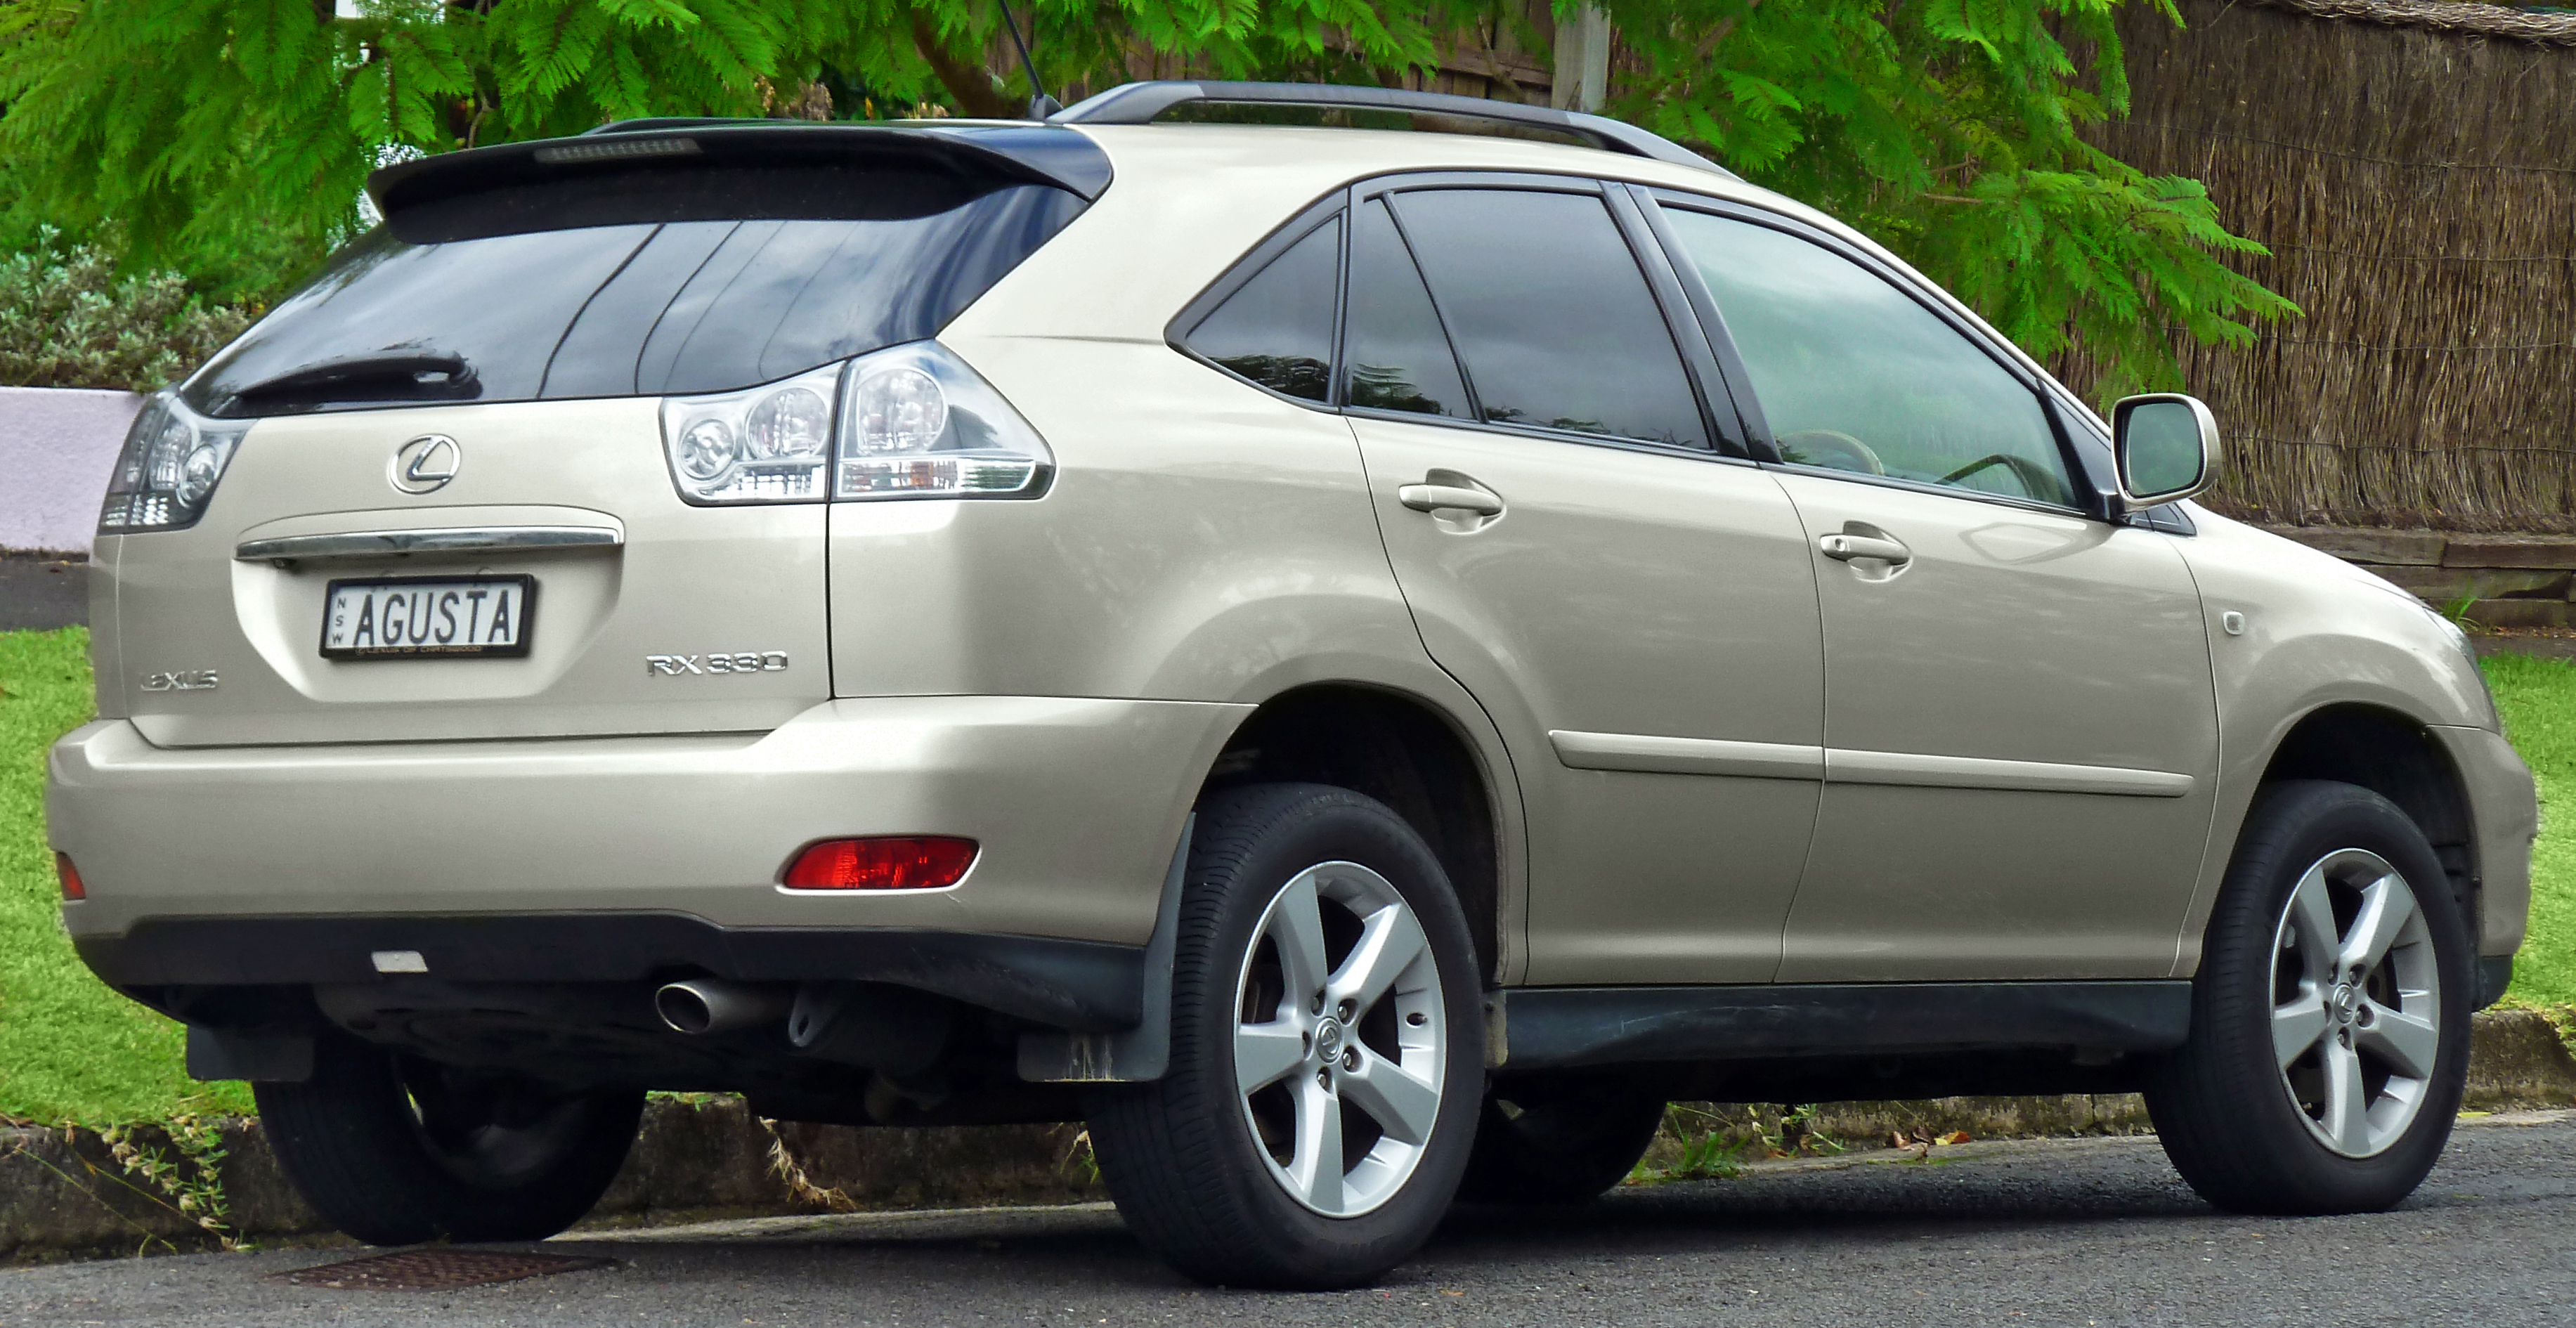 2005 lexus rx330 with 3203 2005 Lexus Rx 330 10 on 291310 Destroyed Abs Sensor Need Help besides 3203 2005 Lexus Rx 330 10 likewise 2001 Lexus IS 300 Pictures C2529 likewise Wallpaper 09 additionally 2004 Lexus ES 330 Overview C2500.